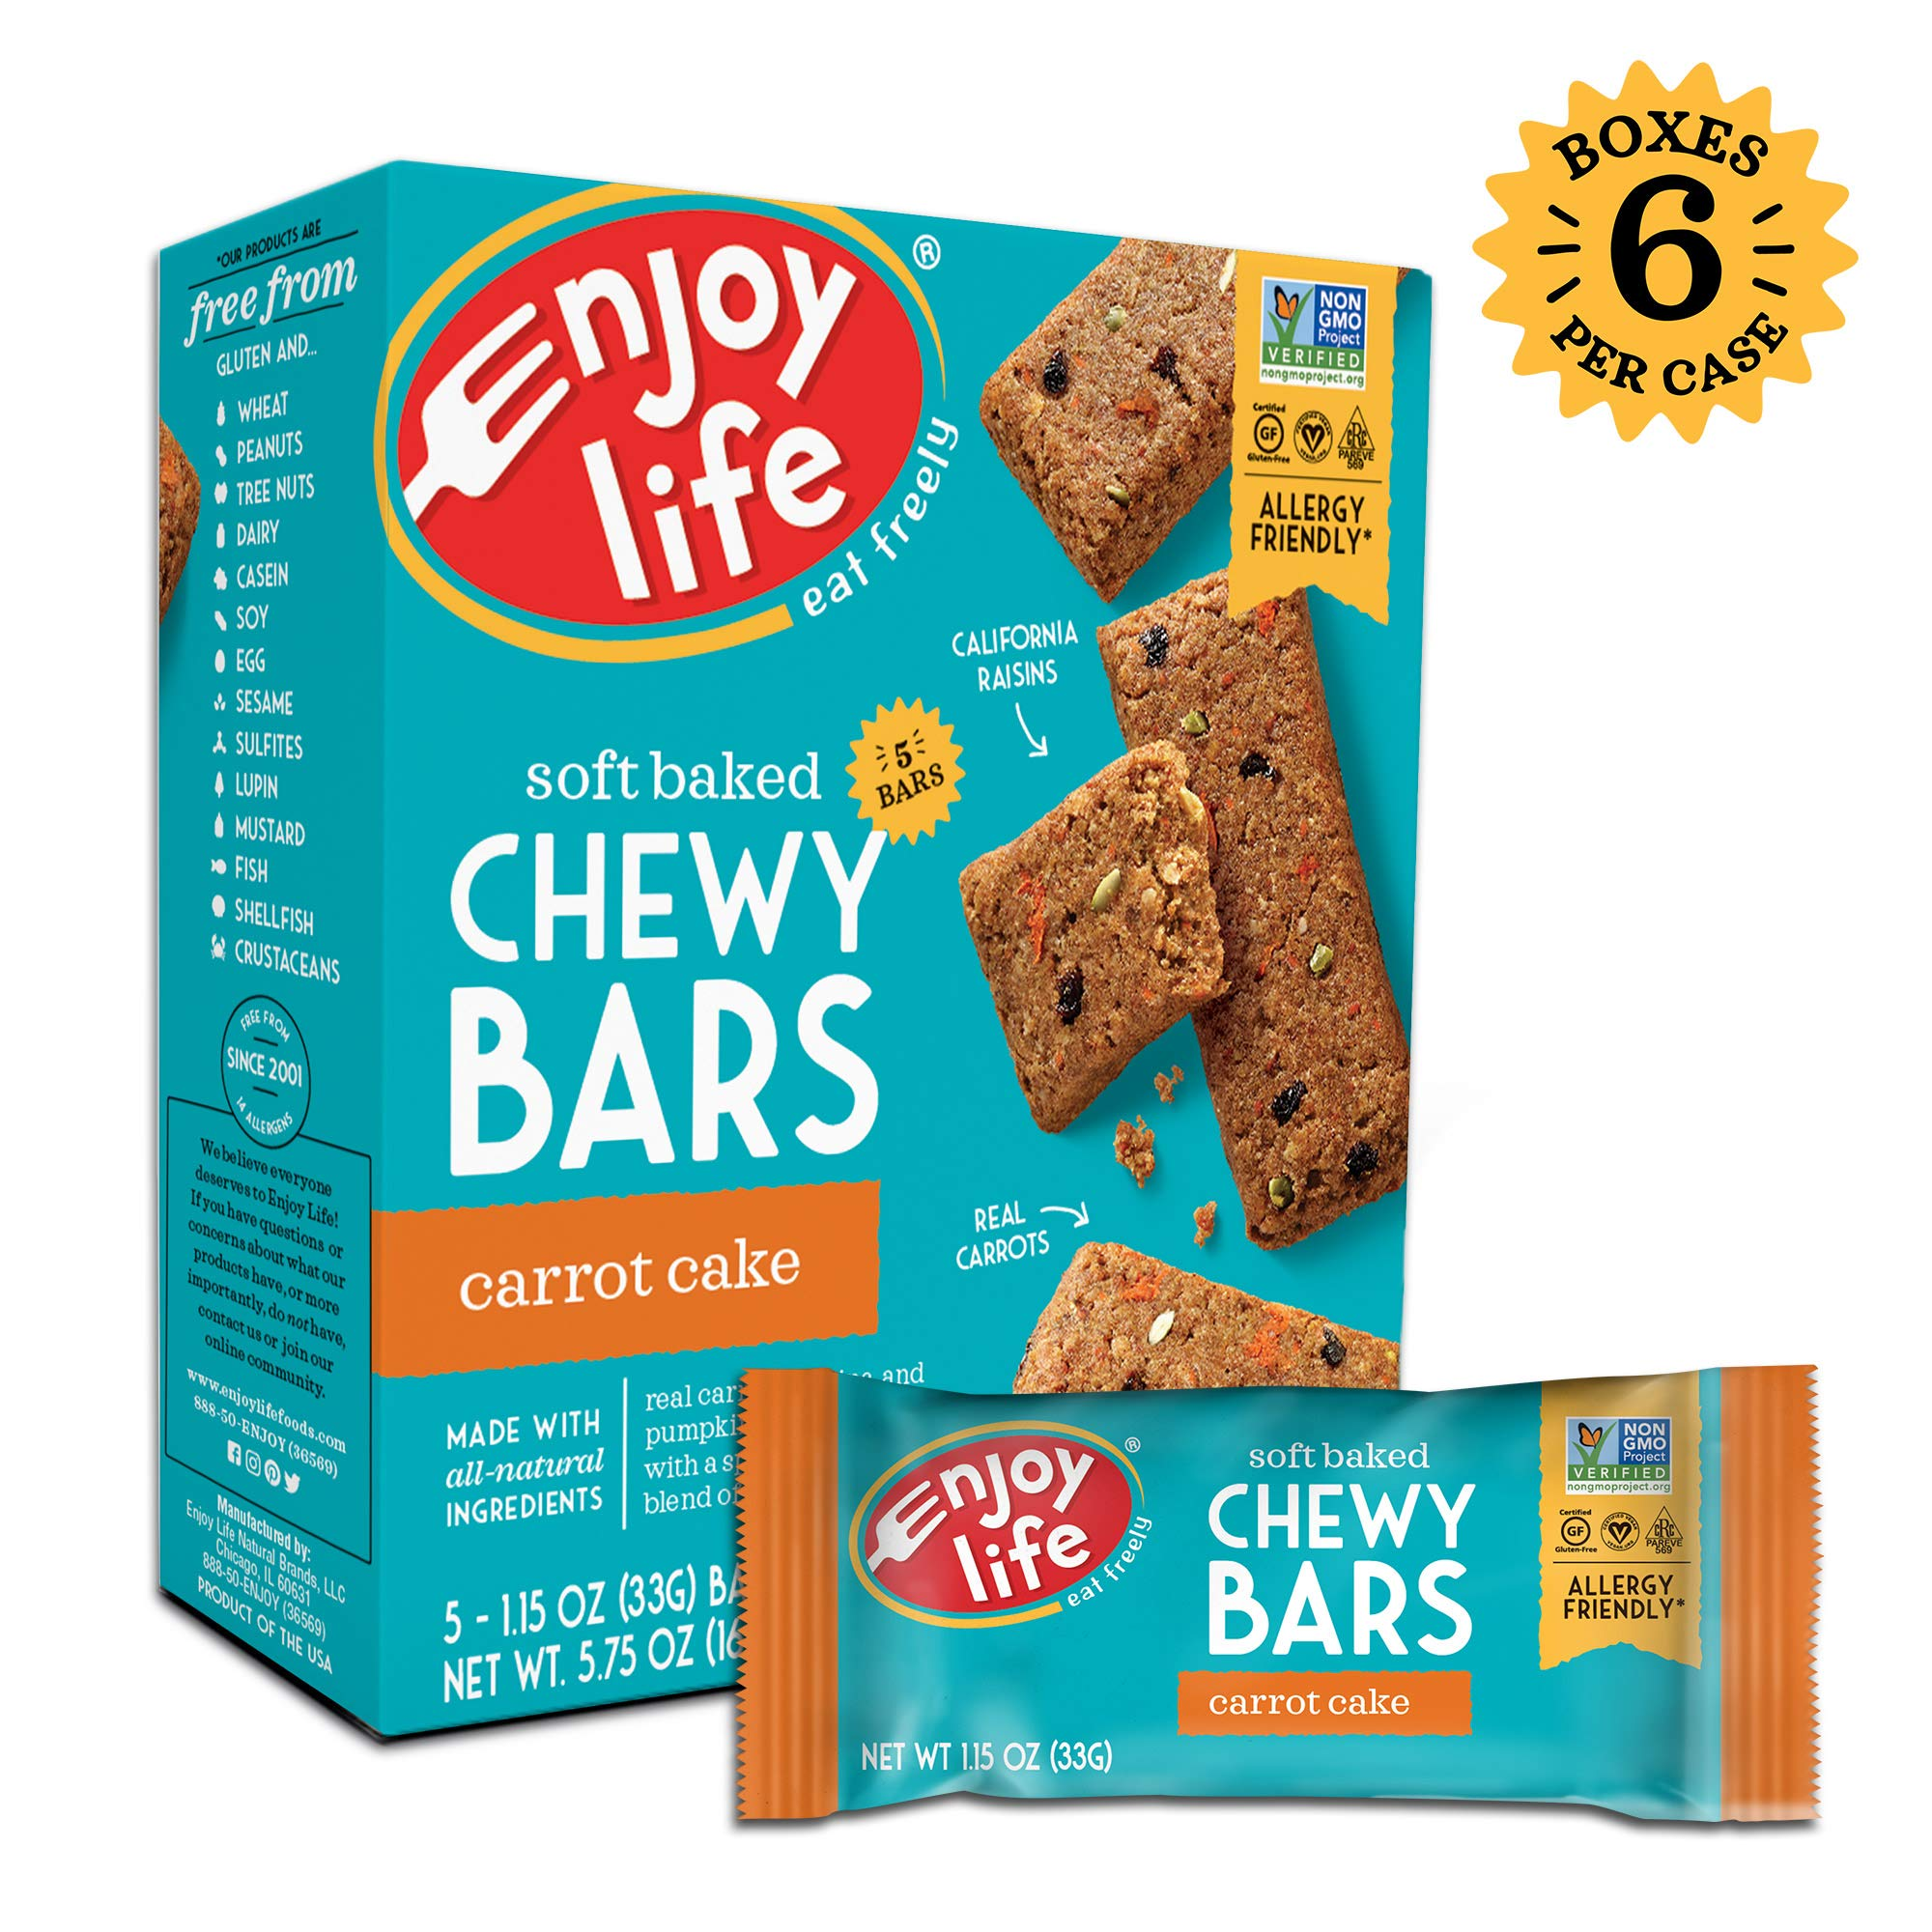 Enjoy Life Chewy Bars, Soy free, Nut free, Gluten free, Dairy free, Non GMO, Vegan, Carrot Cake, 6 Boxes (30 Bars) by Enjoy Life Foods